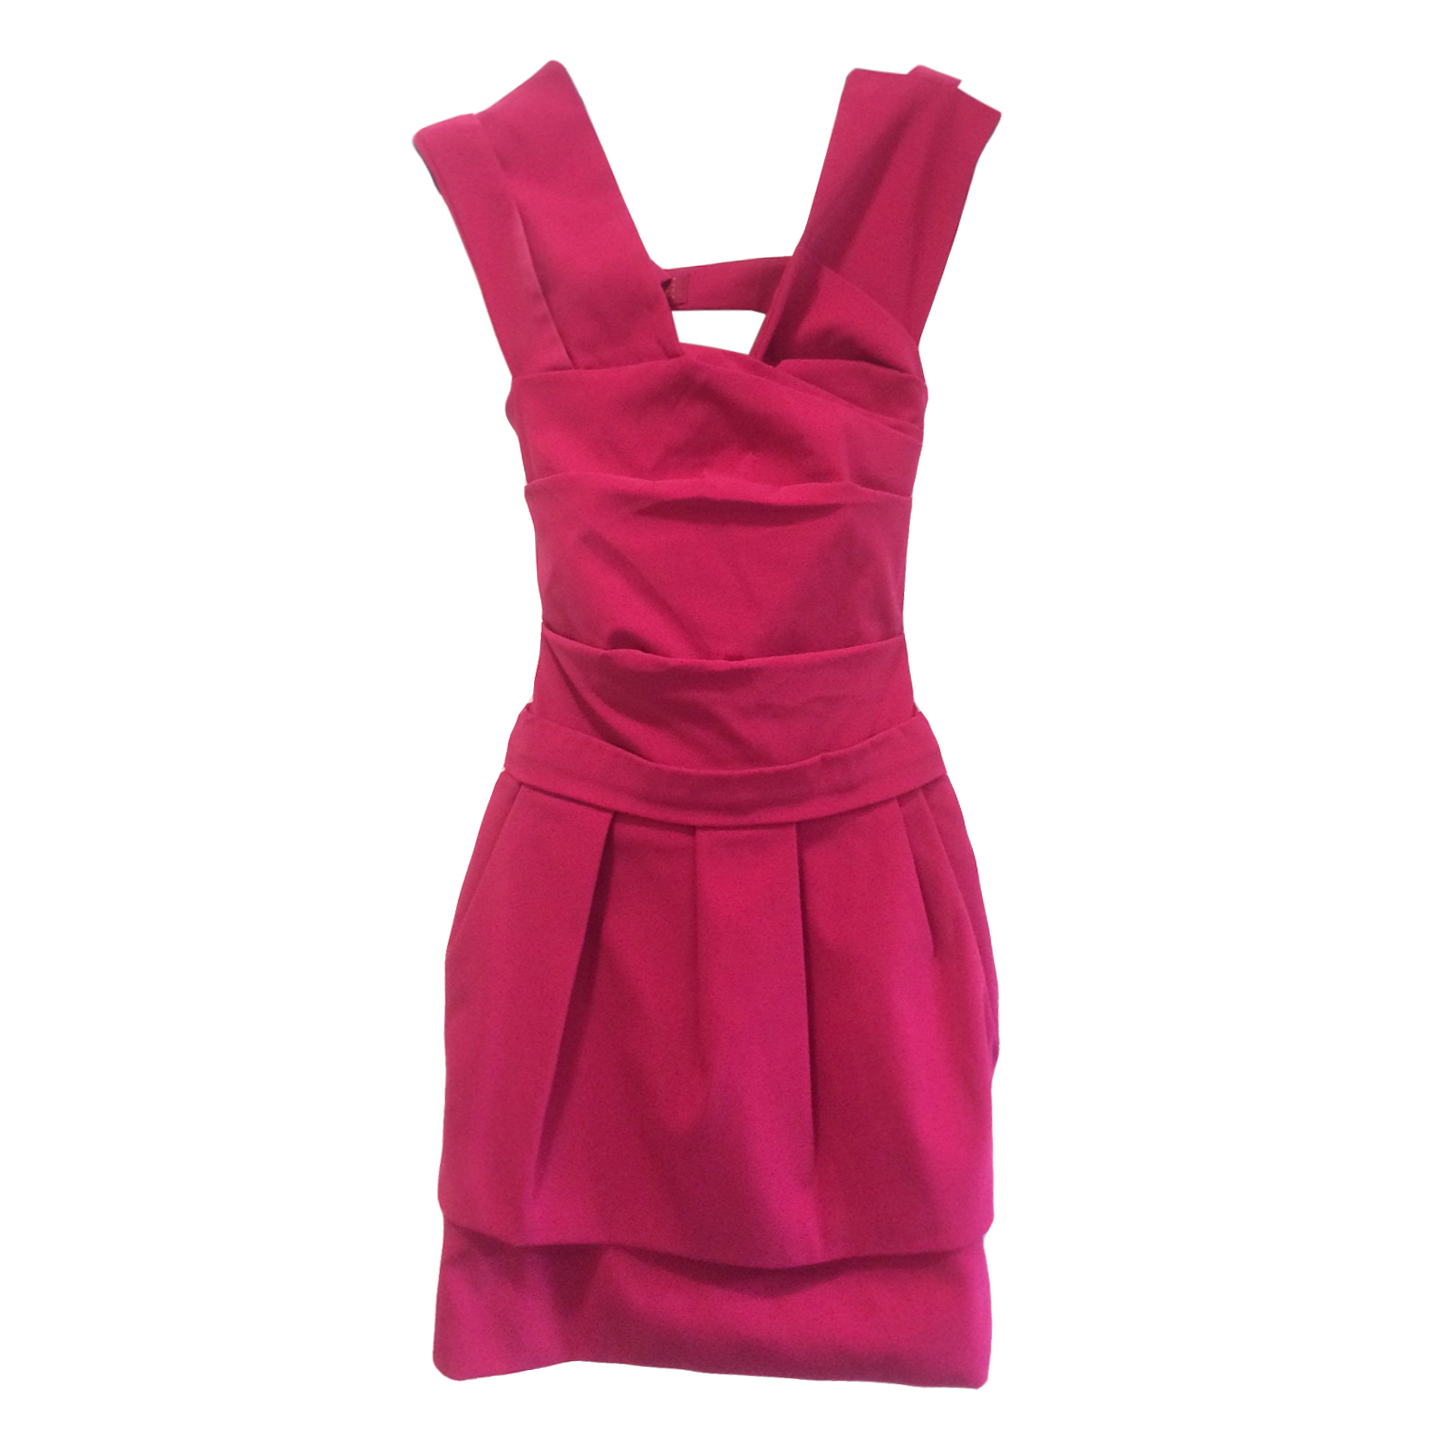 Preen by Thornton Bregazzi Fuchsia Dress